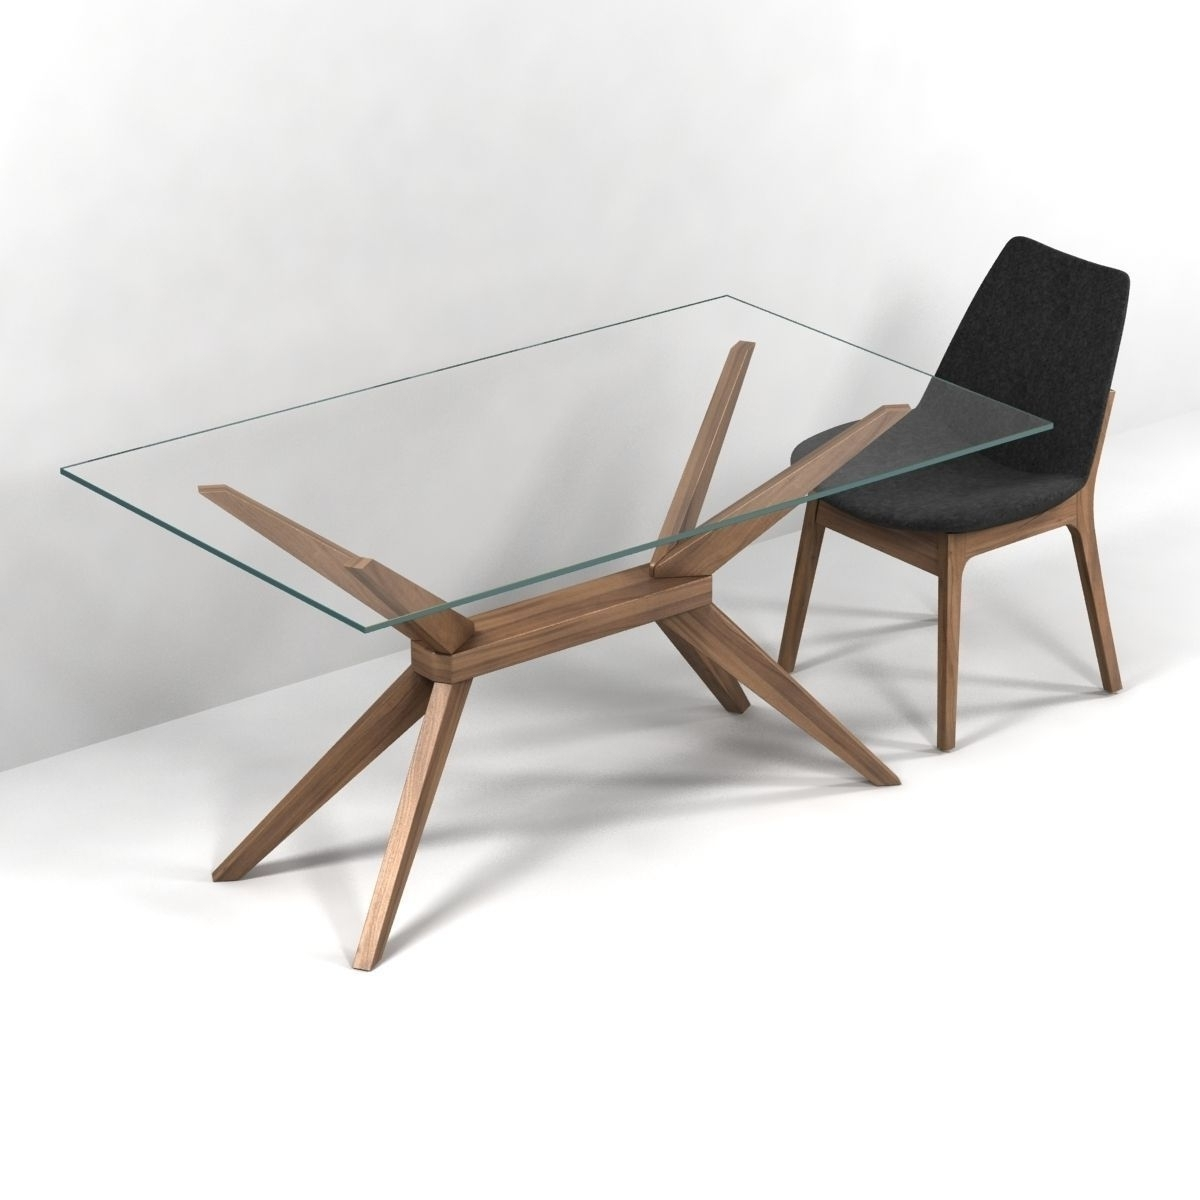 Wooden Glass Dining Tables Inside Well Known Magna Glass Dining Tableinmod Sohoconcept Eiffel Wood Chair 3D (View 22 of 25)